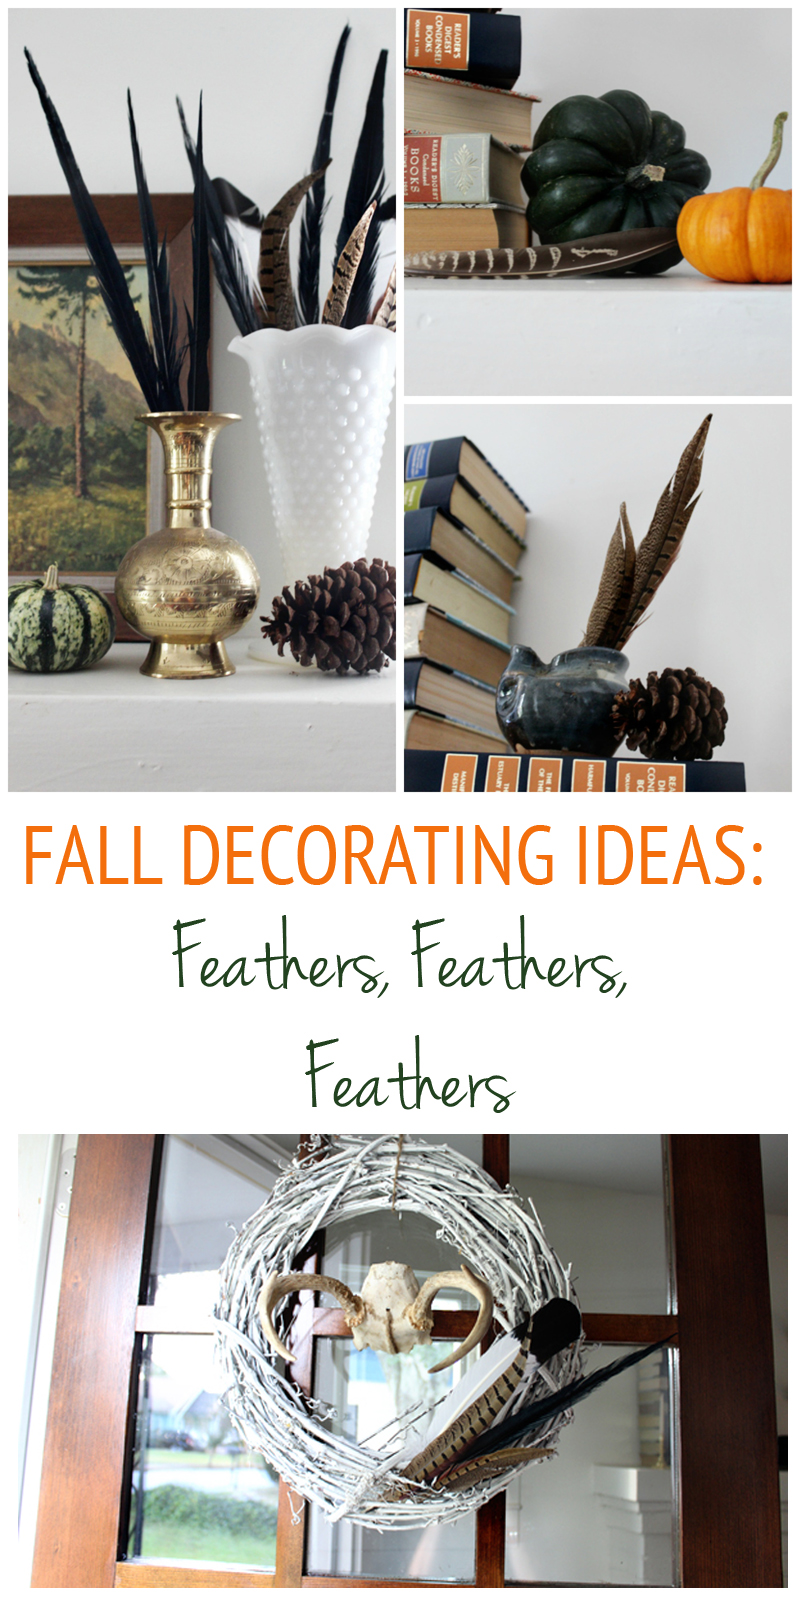 Fall Decorating with Feathers